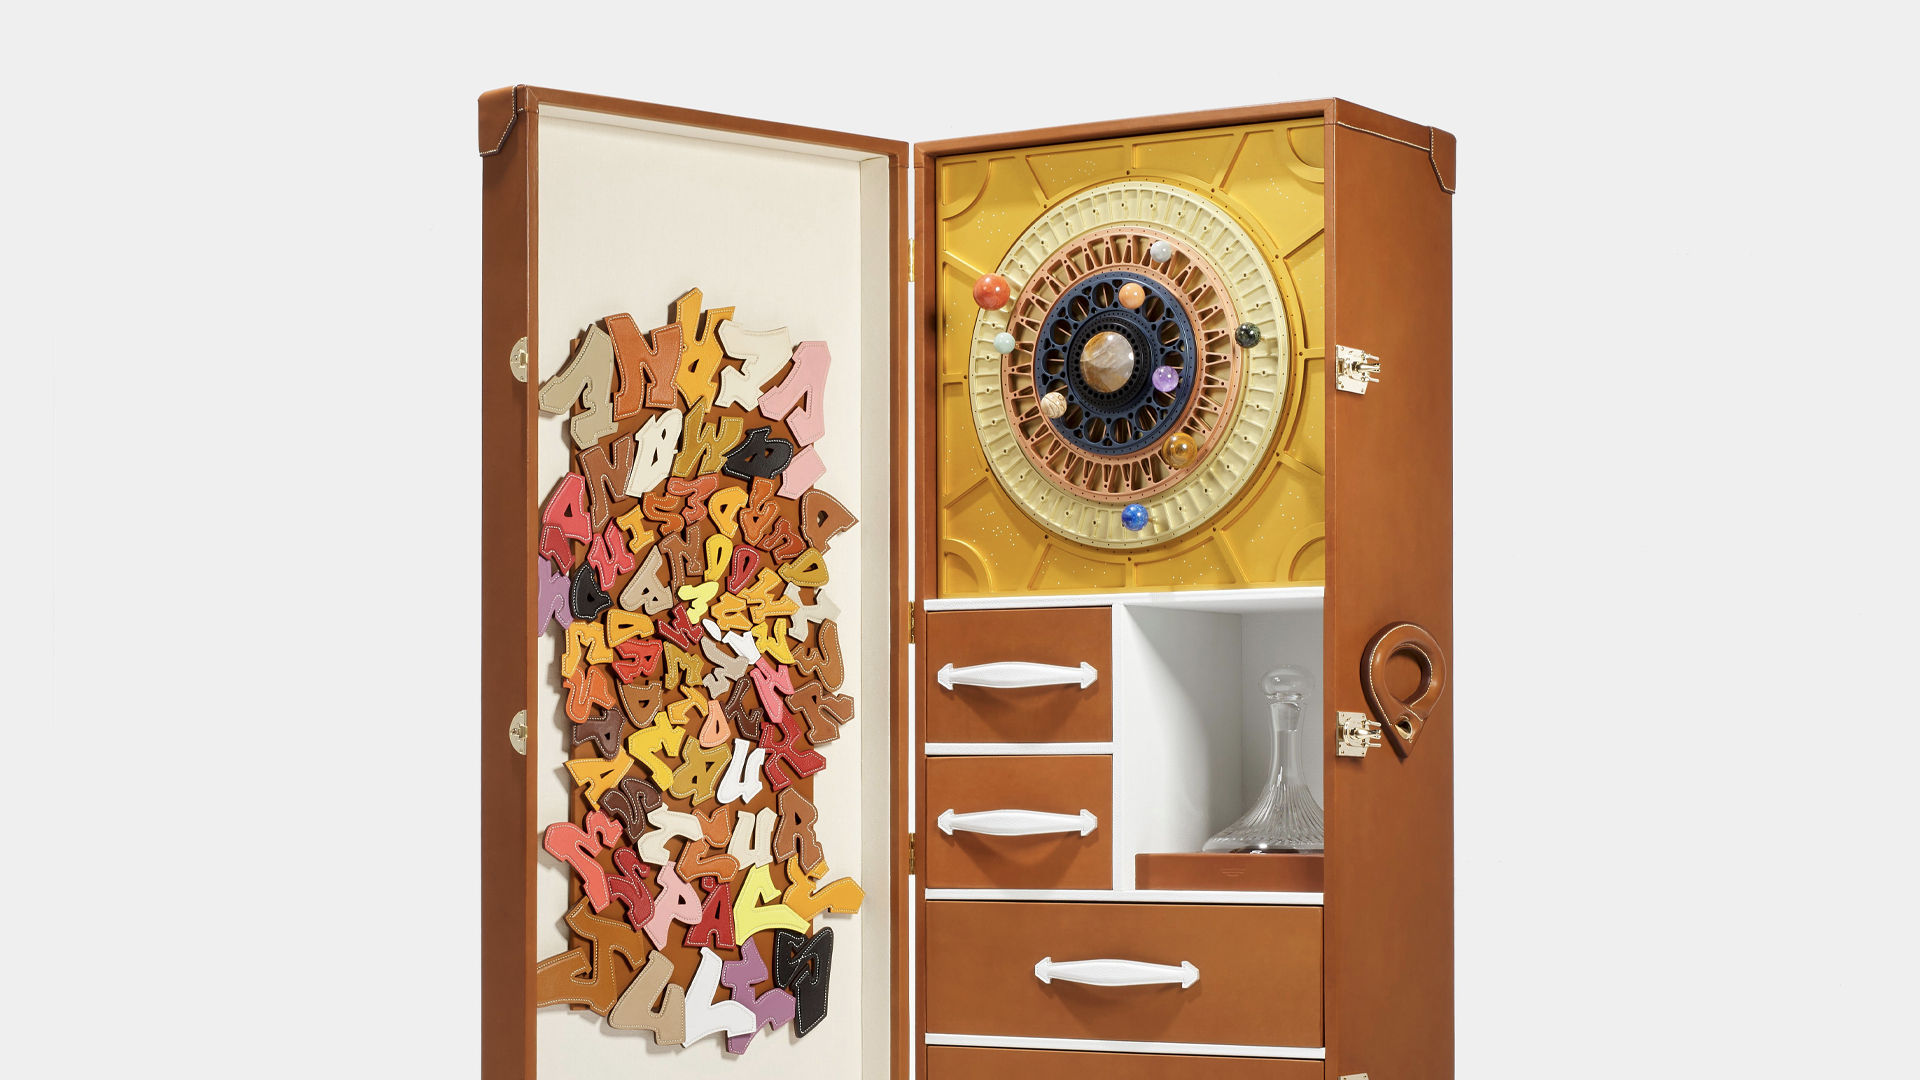 The Parisian Maison d'Arts Les Ateliers Victor suitcase is included with the space wine.